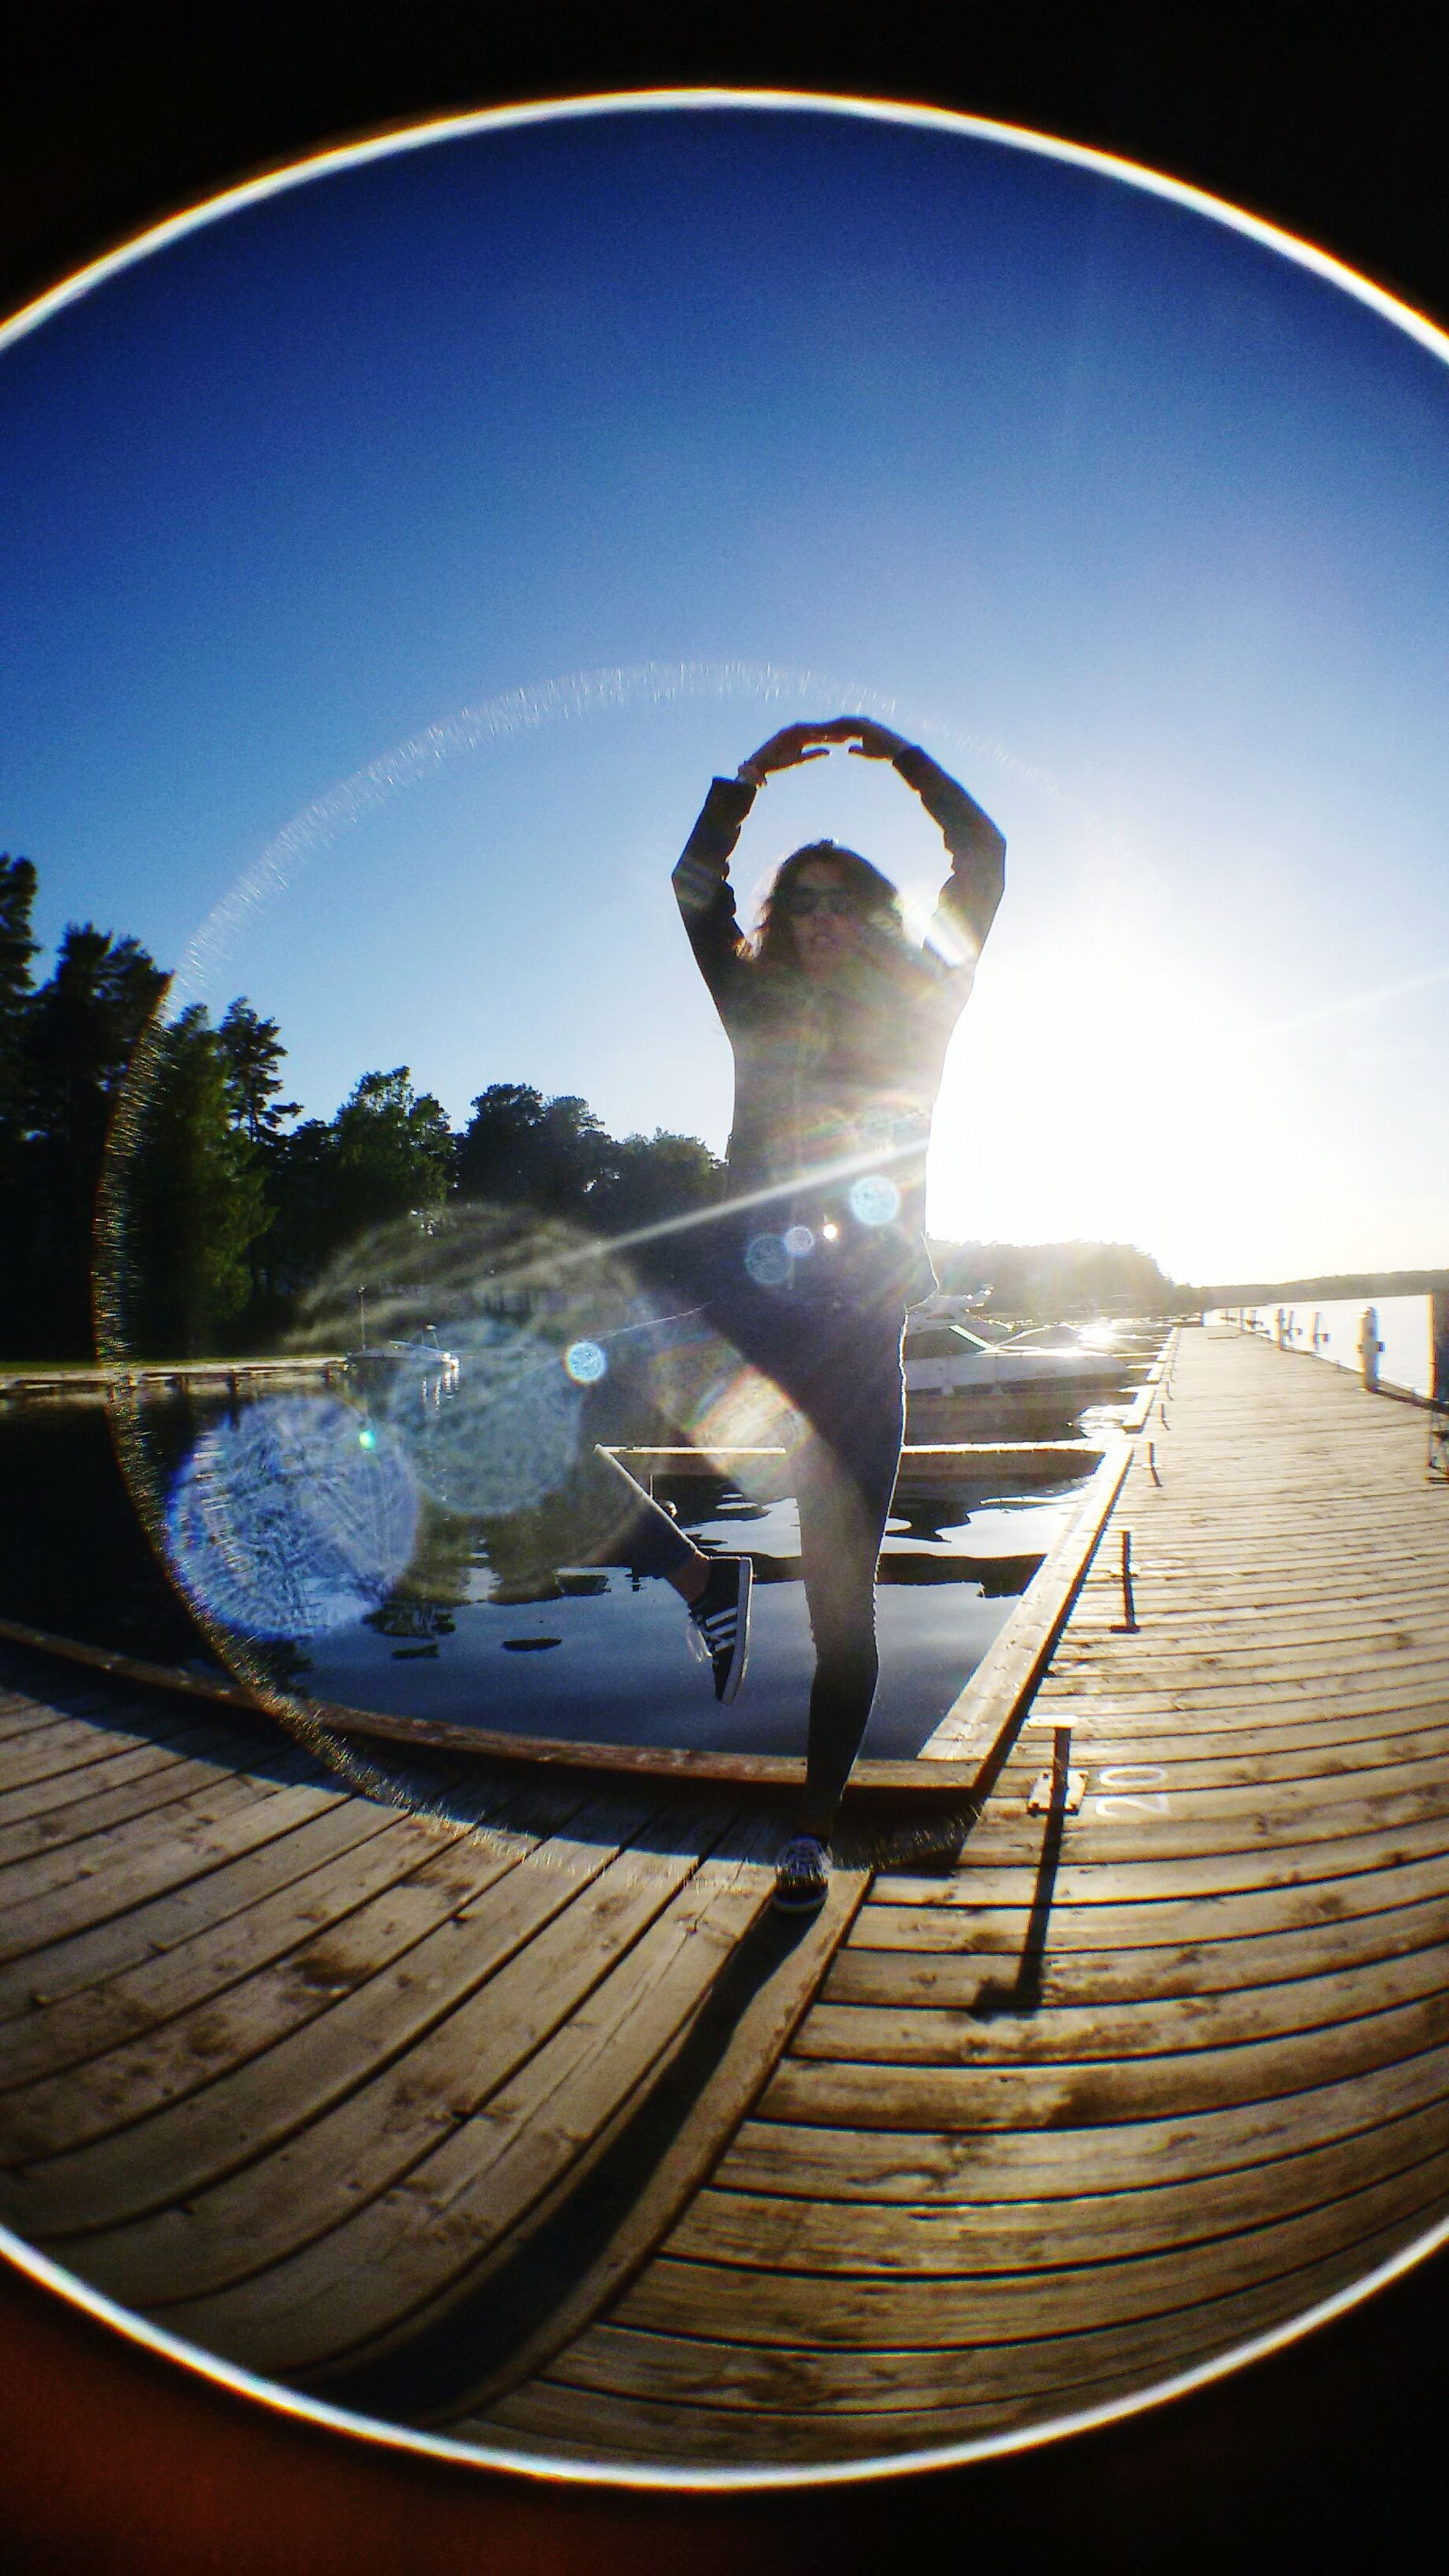 one animal, full length, sky, blue, motion, mid-air, sunlight, animal themes, water, leisure activity, outdoors, jumping, day, fish-eye lens, nature, reflection, lifestyles, side view